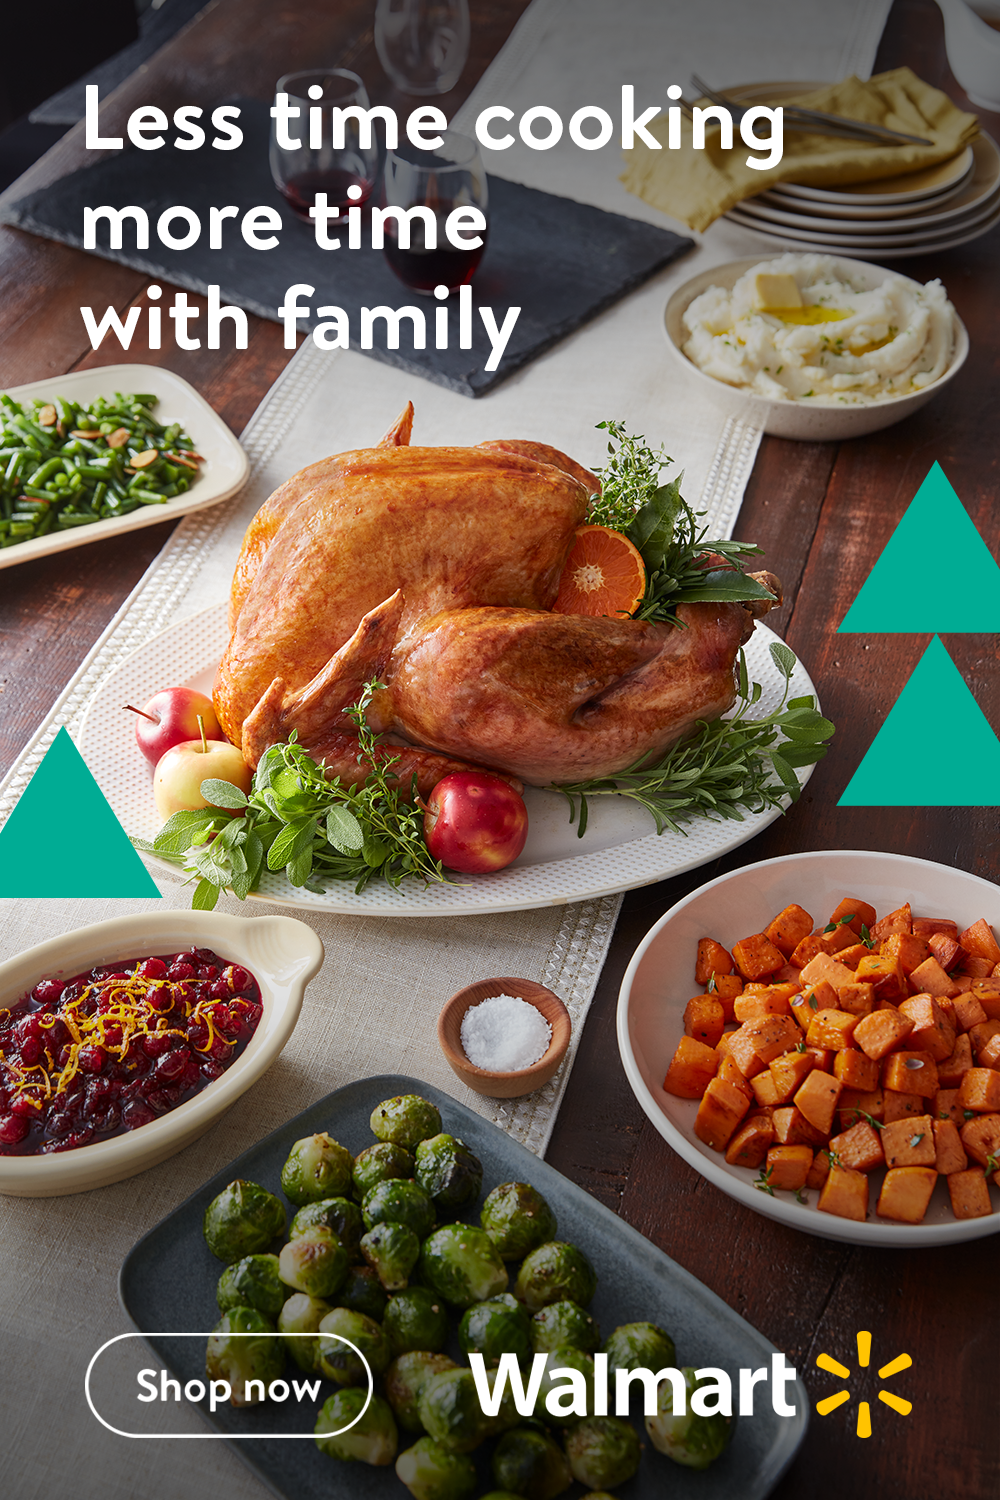 This holiday, spend less time cooking and more time with family with these delicious, easy-to-make meals from Walmart. They'll have the whole family excited for dinner all season long.